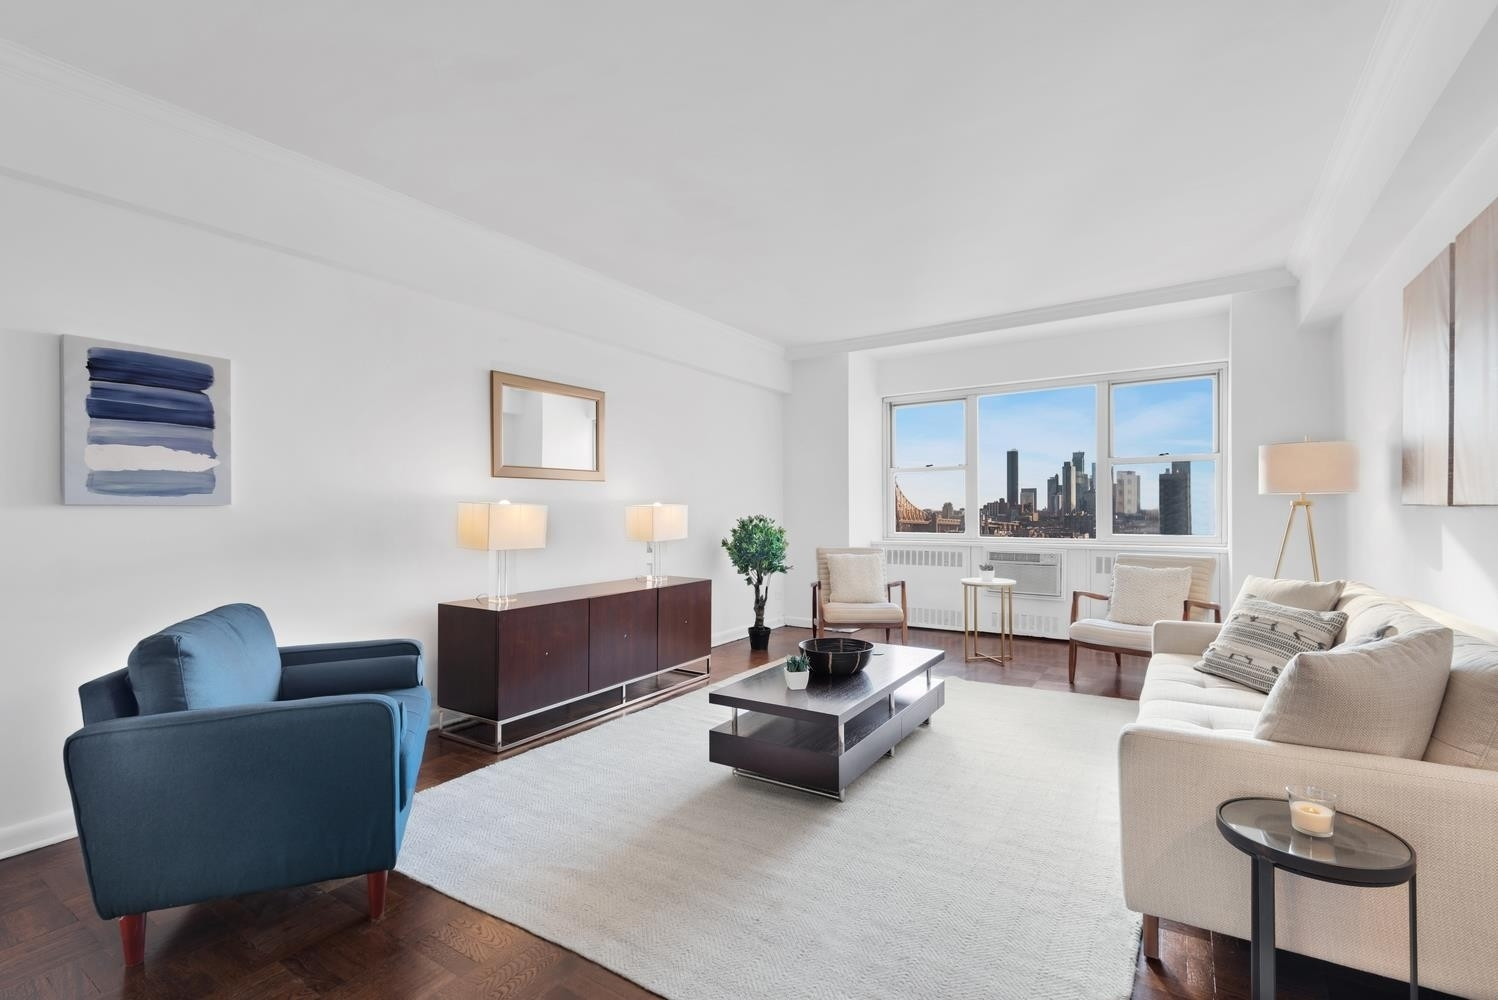 Property at Cannon Point North, 25 SUTTON PL S, 17K Sutton Place, New York, NY 10022